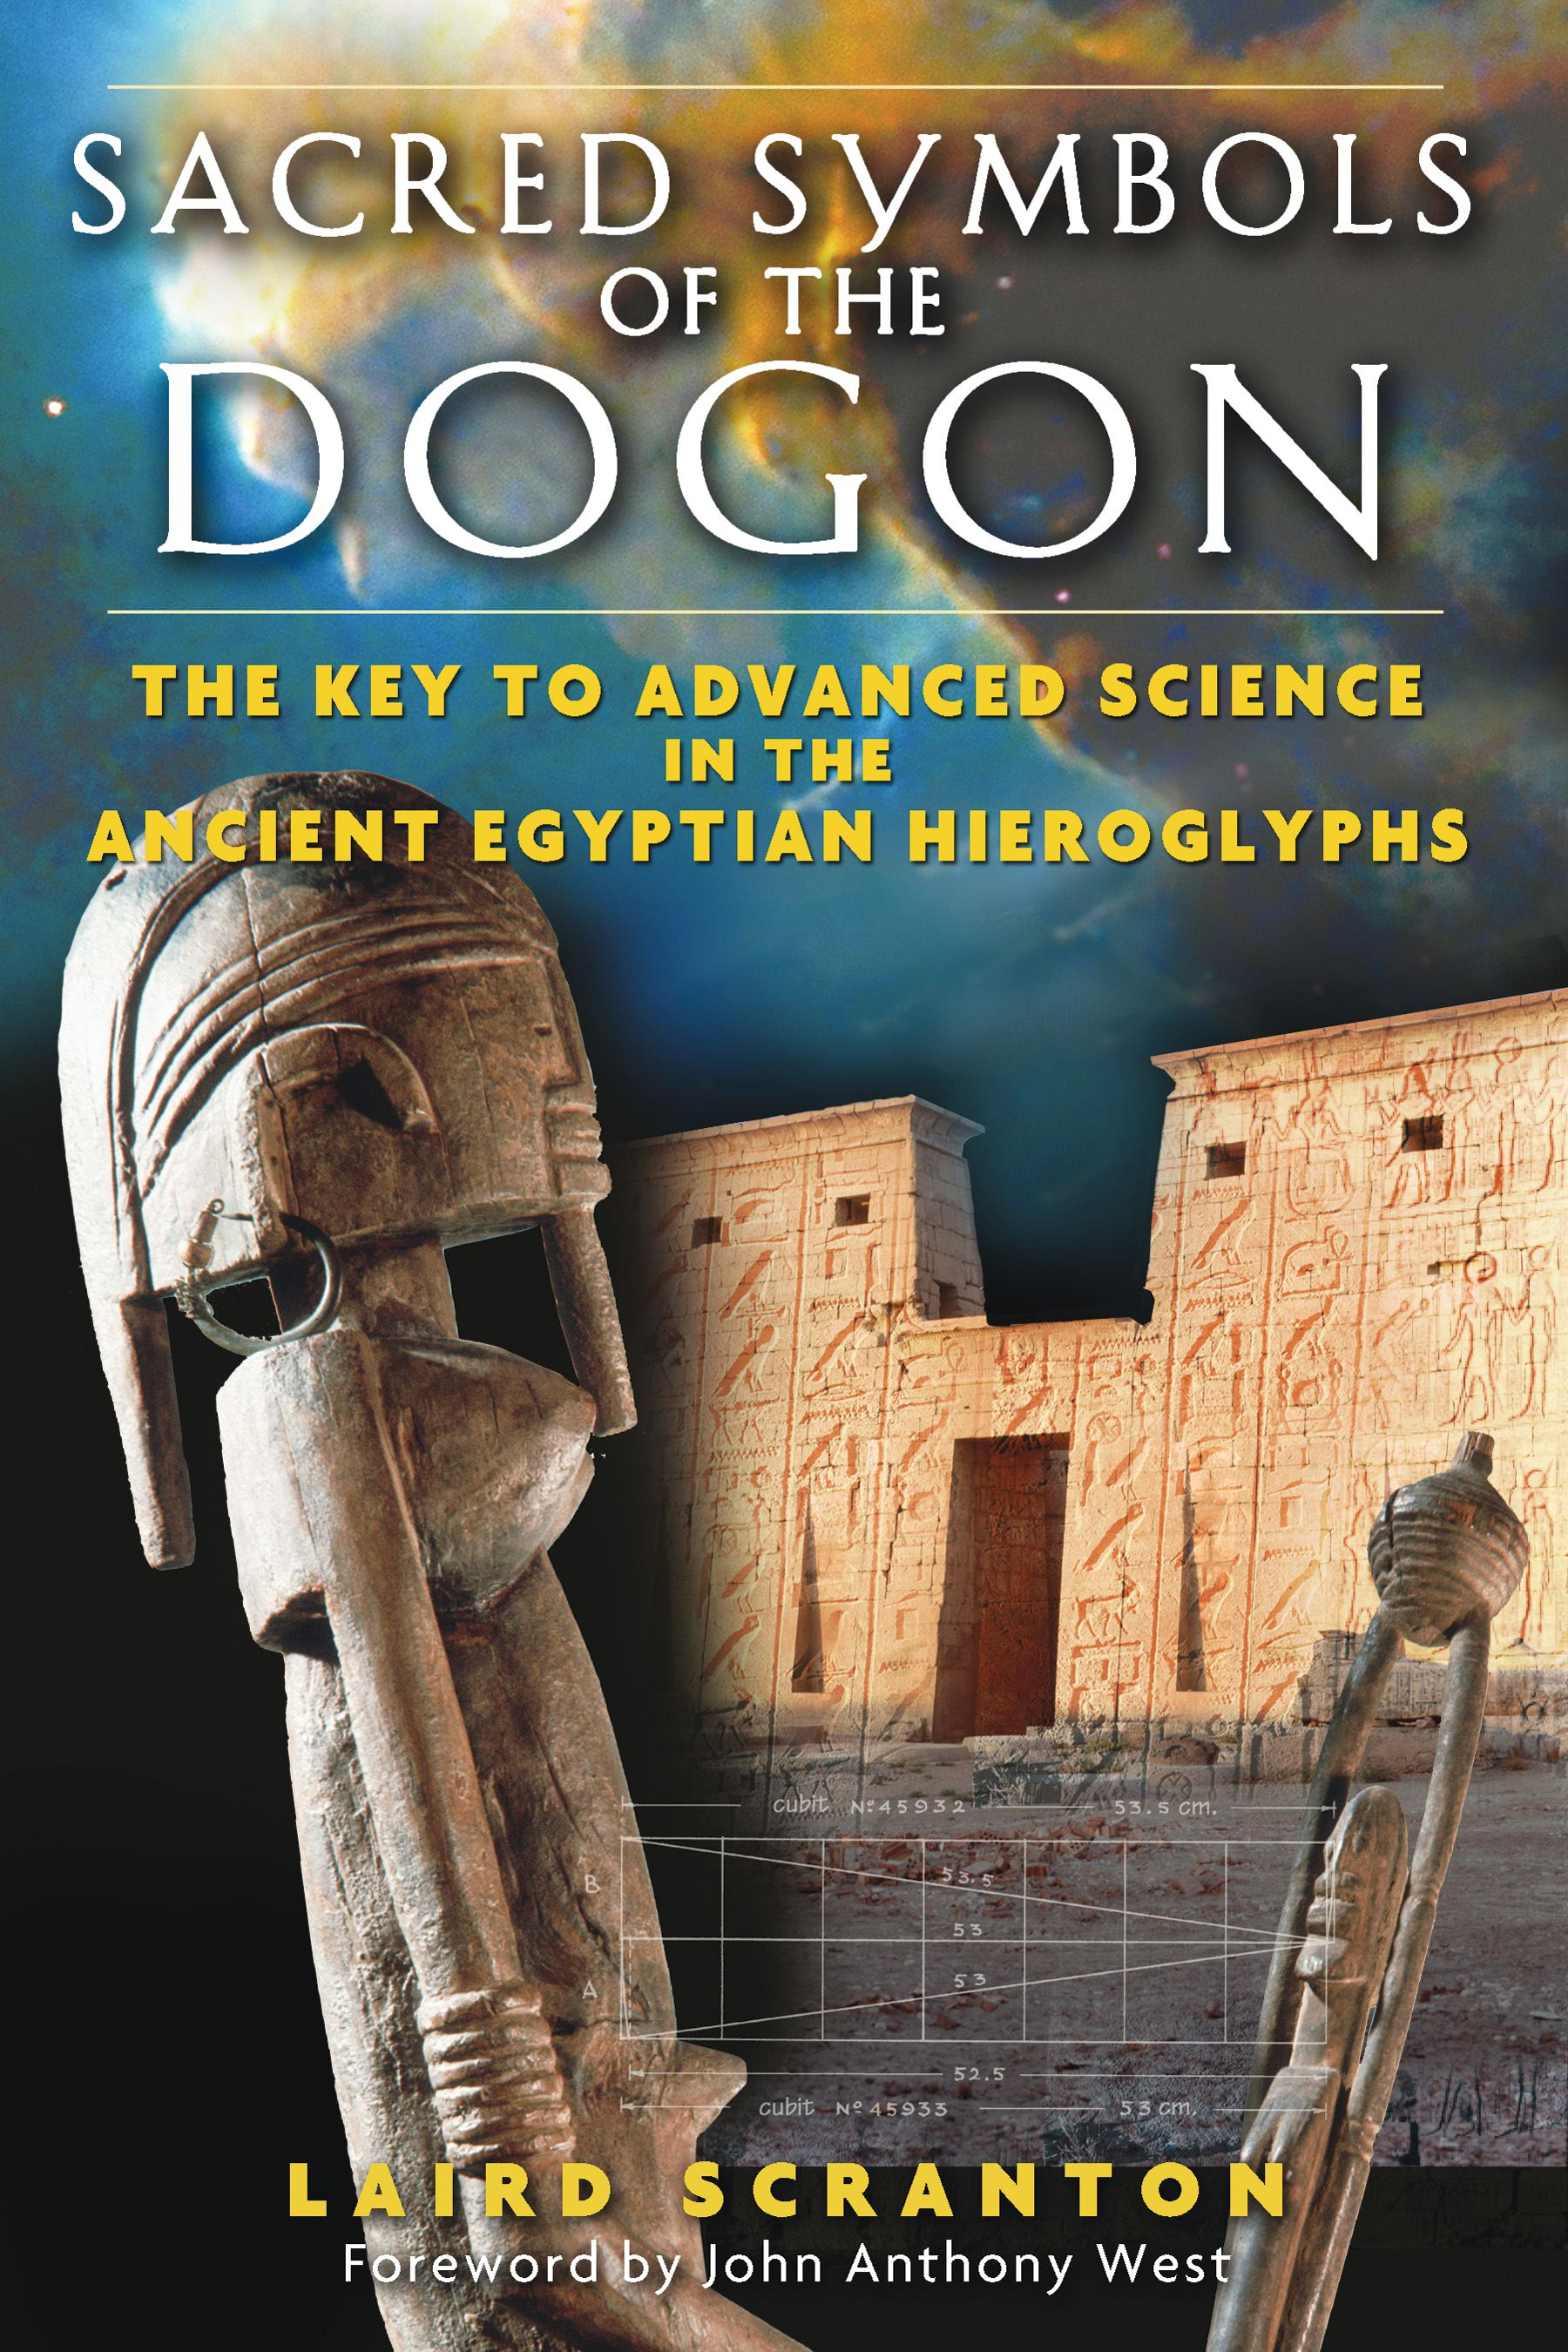 Sacred Symbols Of The Dogon Book By Laird Scranton John Anthony